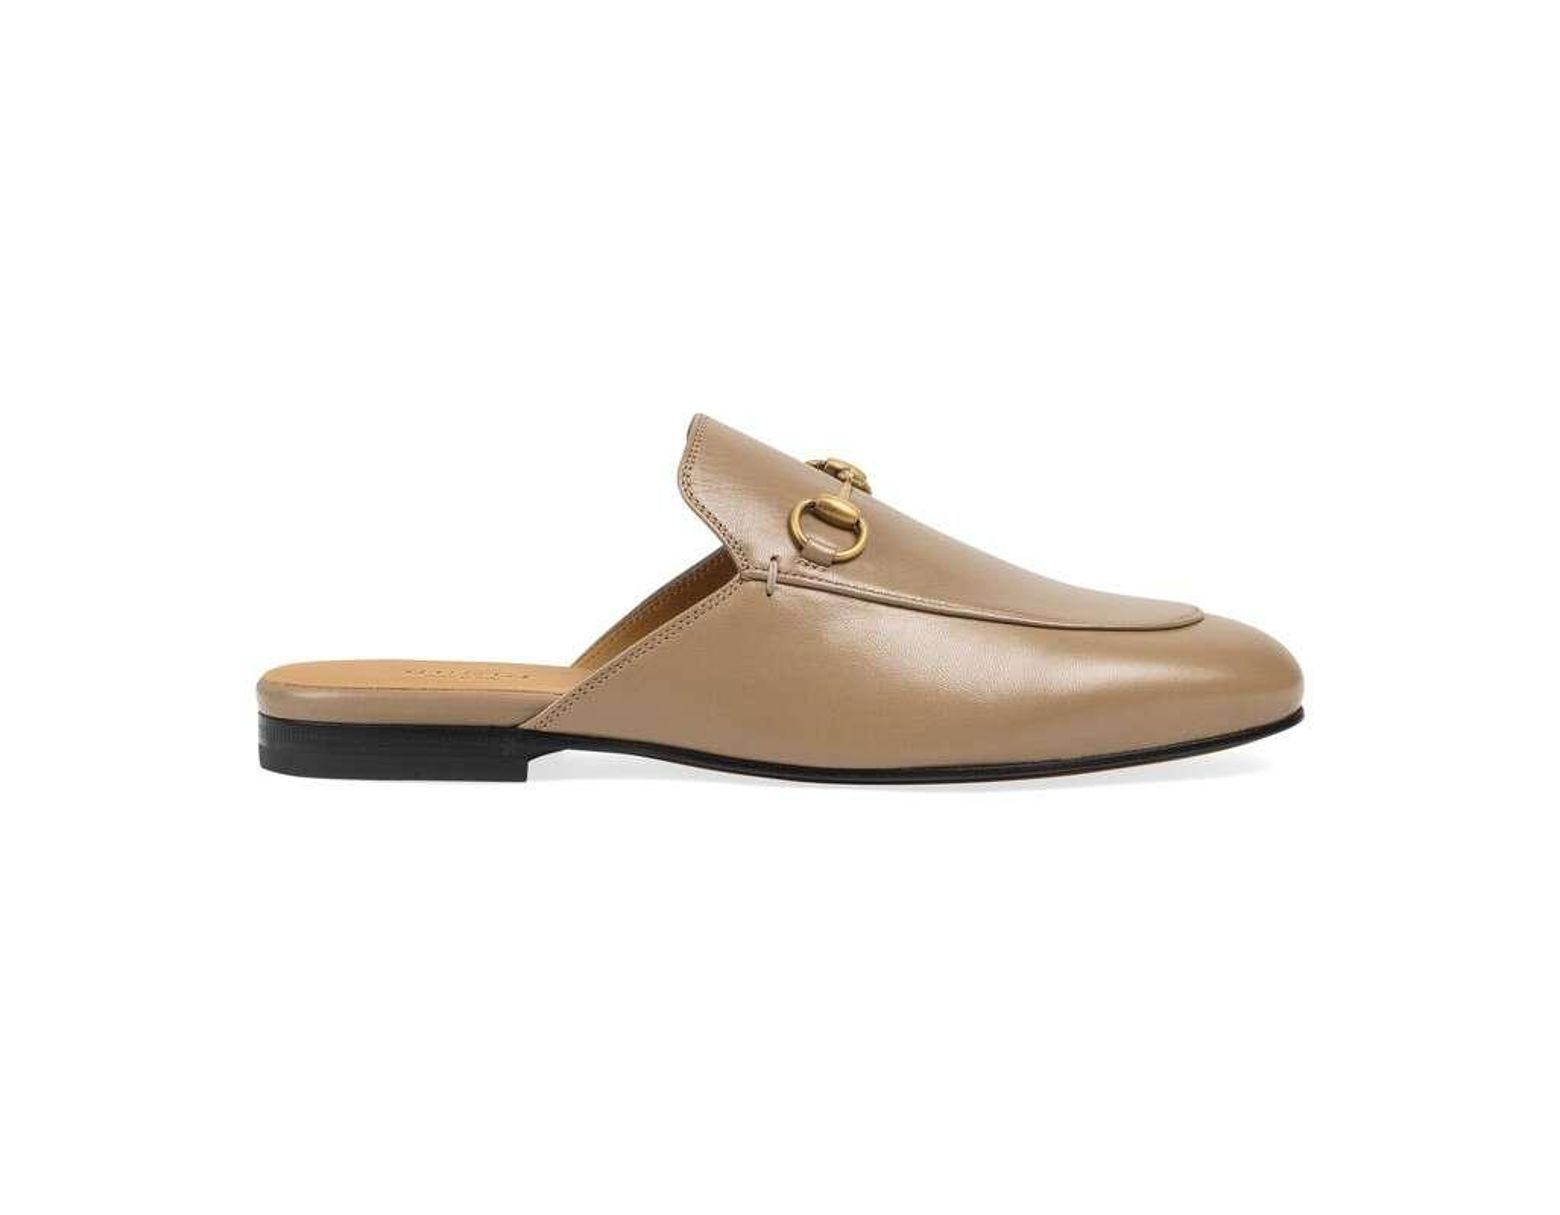 809042a7d08d Gucci Women's Princetown Leather Slipper in Brown - Save 24% - Lyst